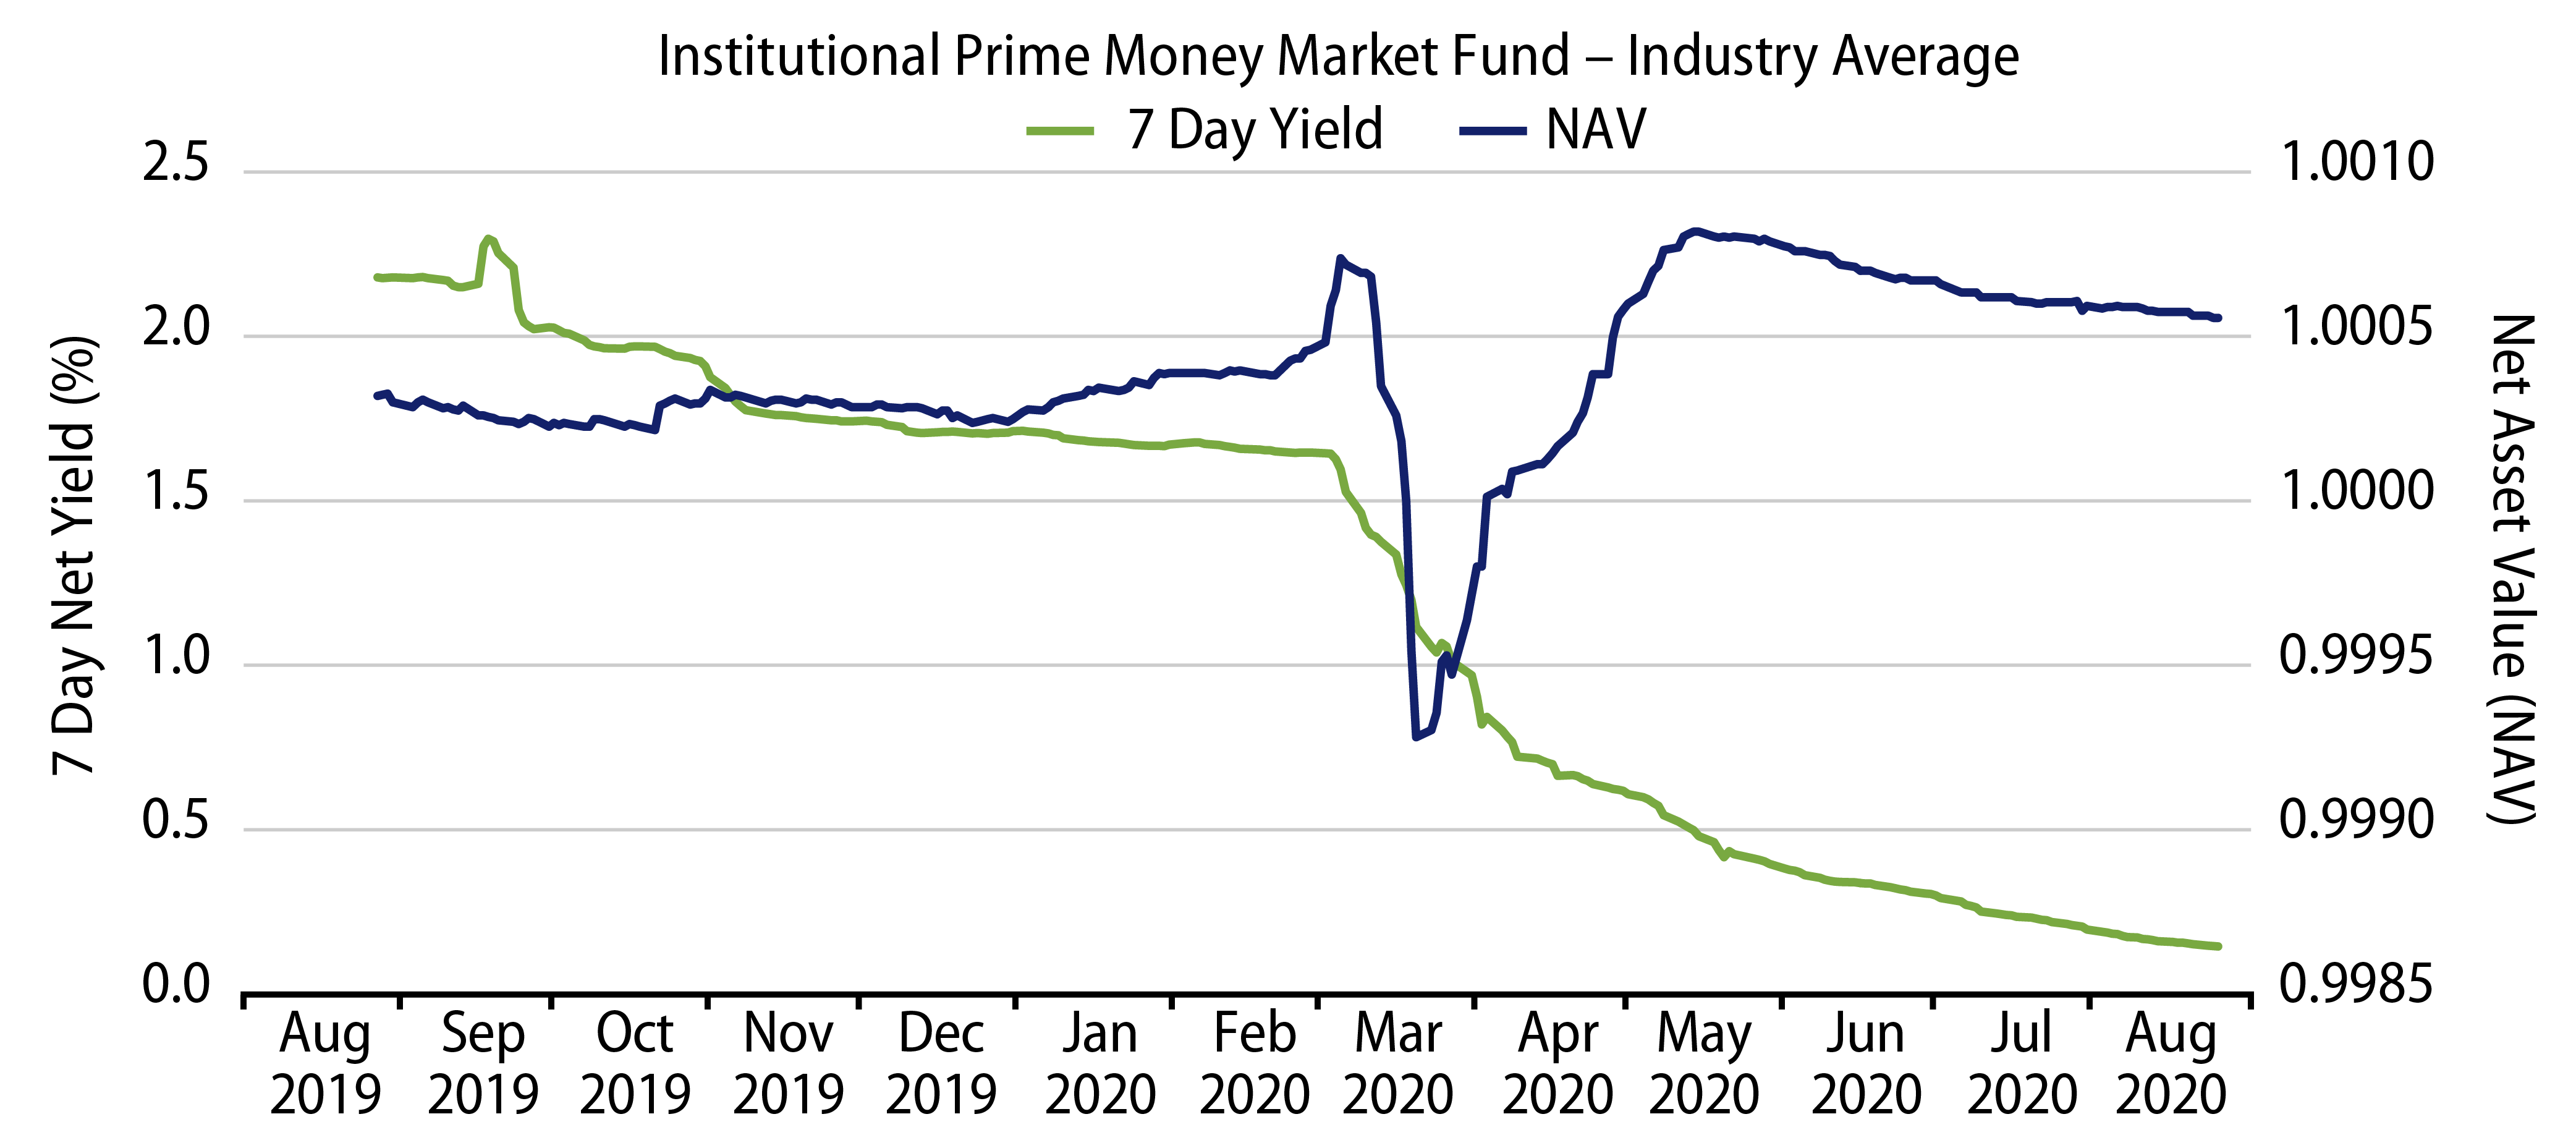 Explore Average NAV and 7-Day Yield of Institutional Prime Money Market Funds.